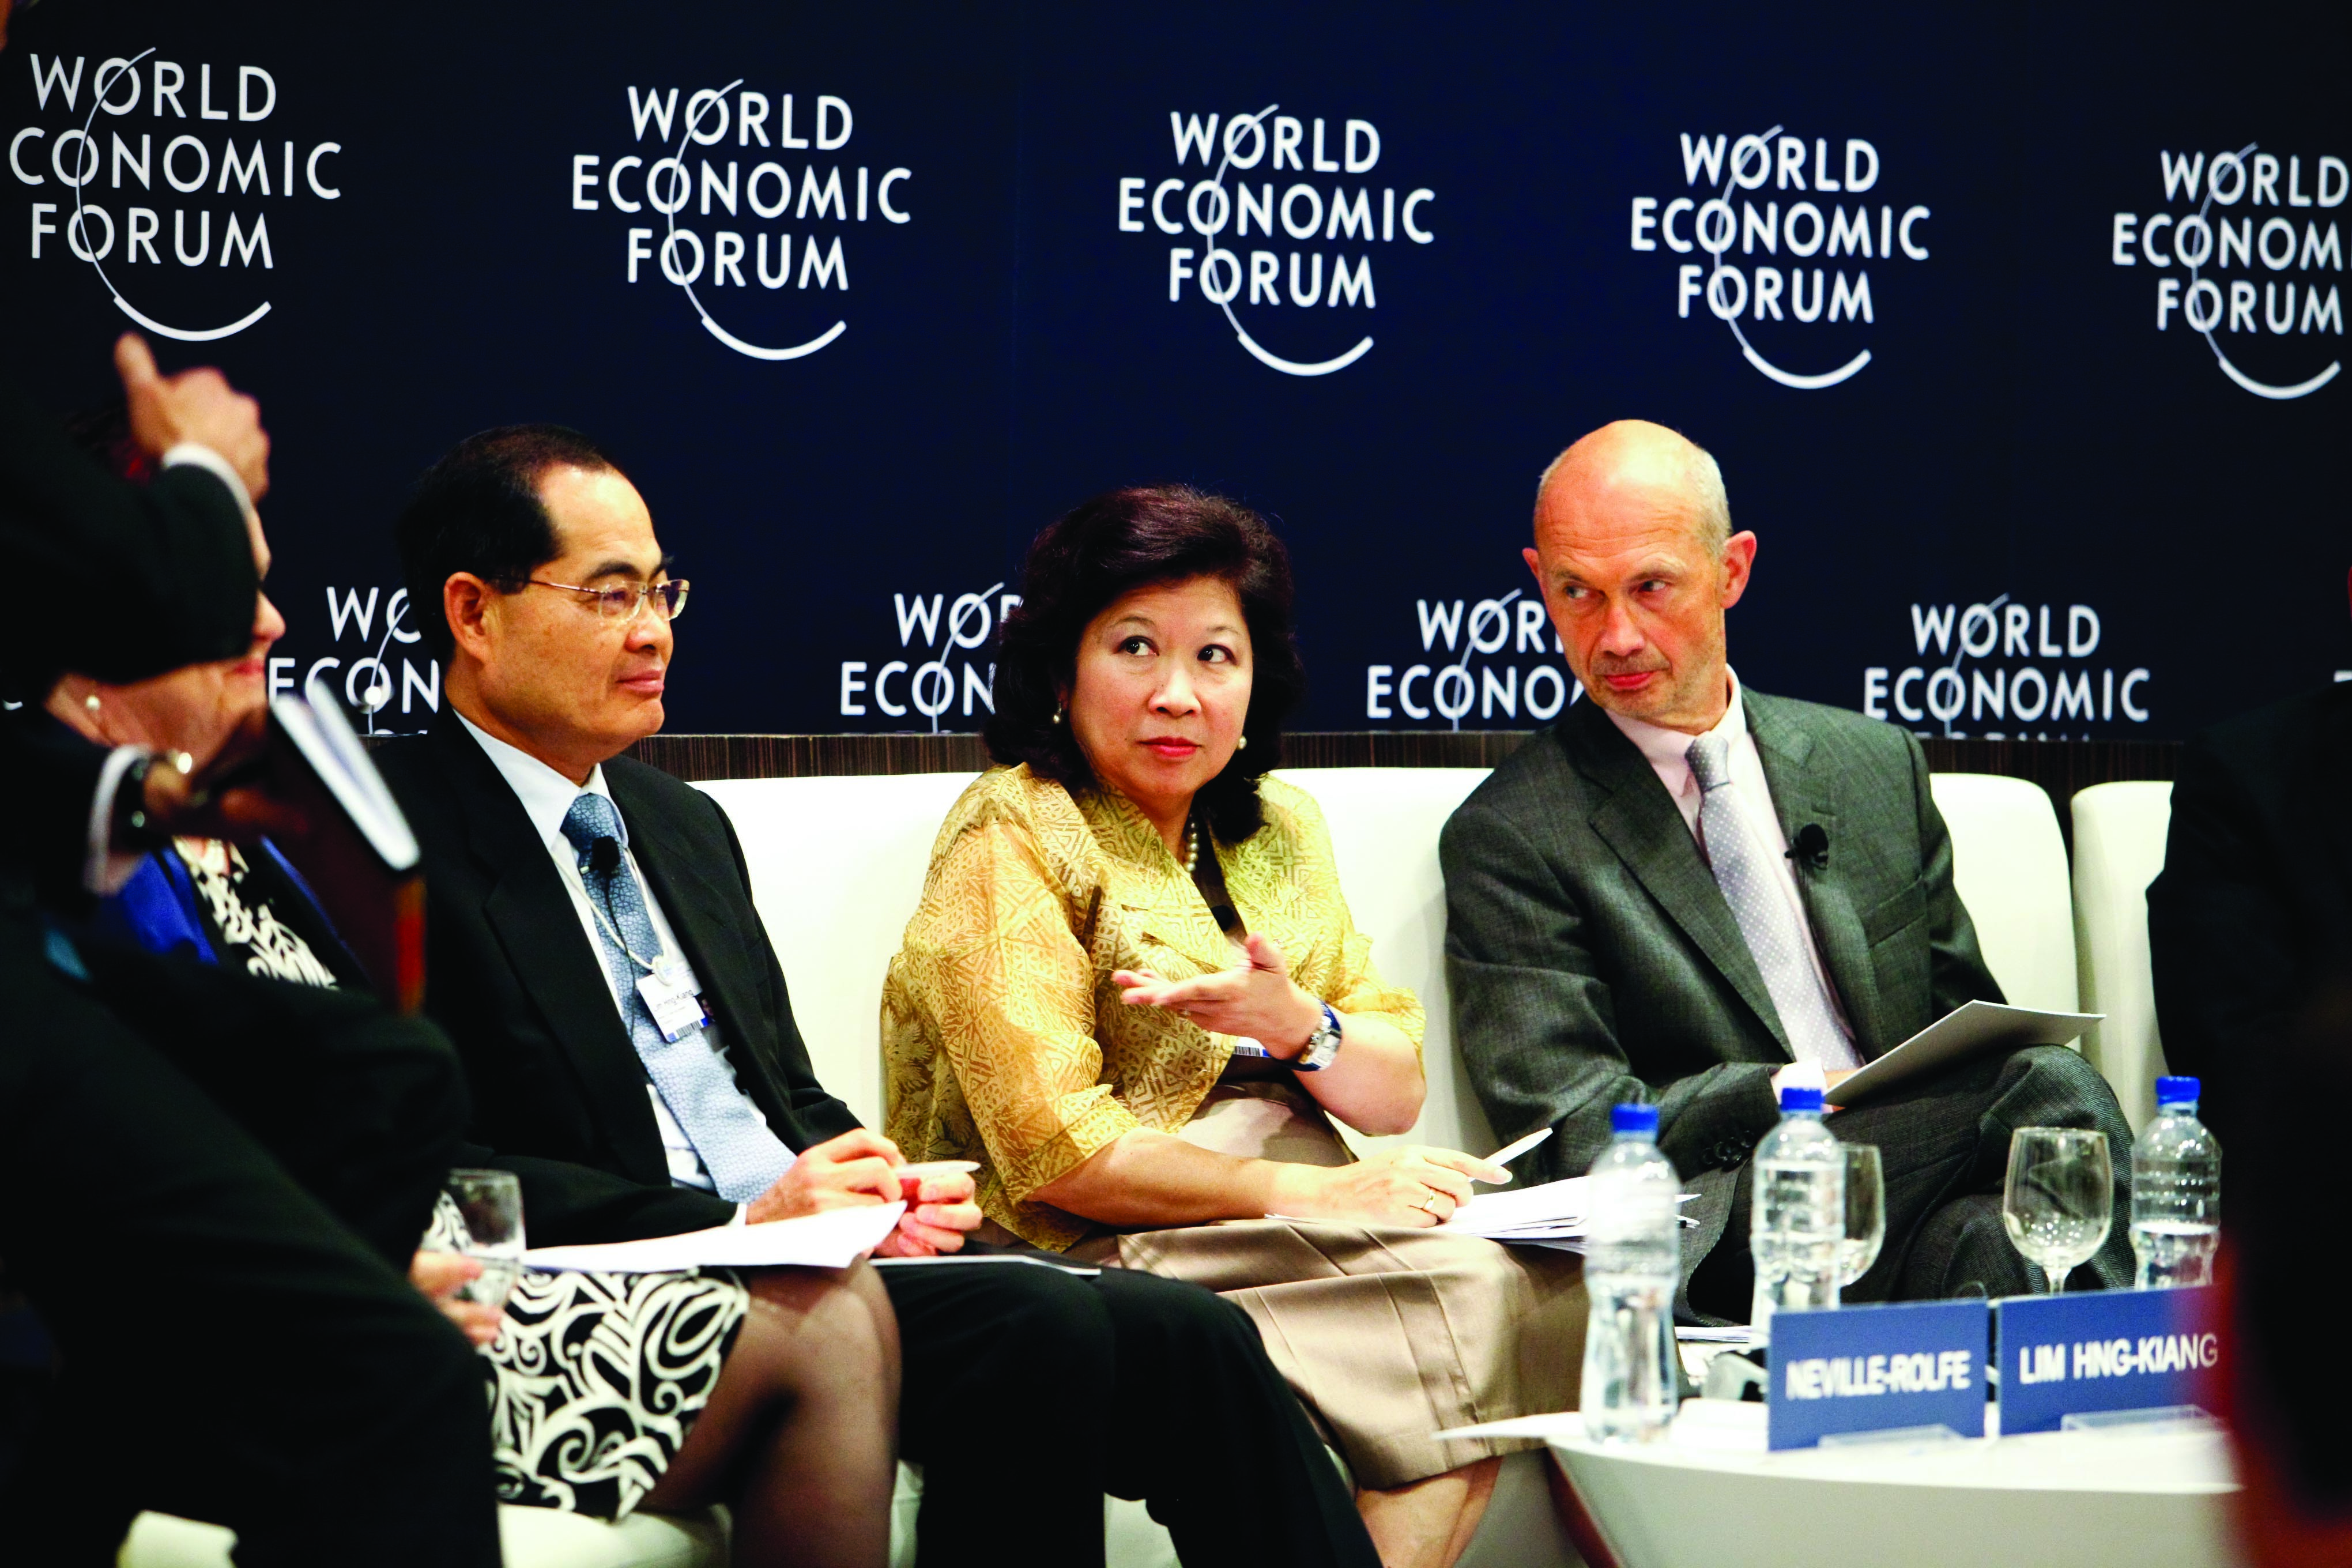 """Lim Hng-Kiang, Minister for Trade and Industry, Singapore, Mari Elka Pangestu, Minister of Trade, Indonesia and Pascal Lamy, Director-General, World Trade Organization at a panel discussion """"Open Borders: Building Trade Capacity in Emerging Economies"""""""